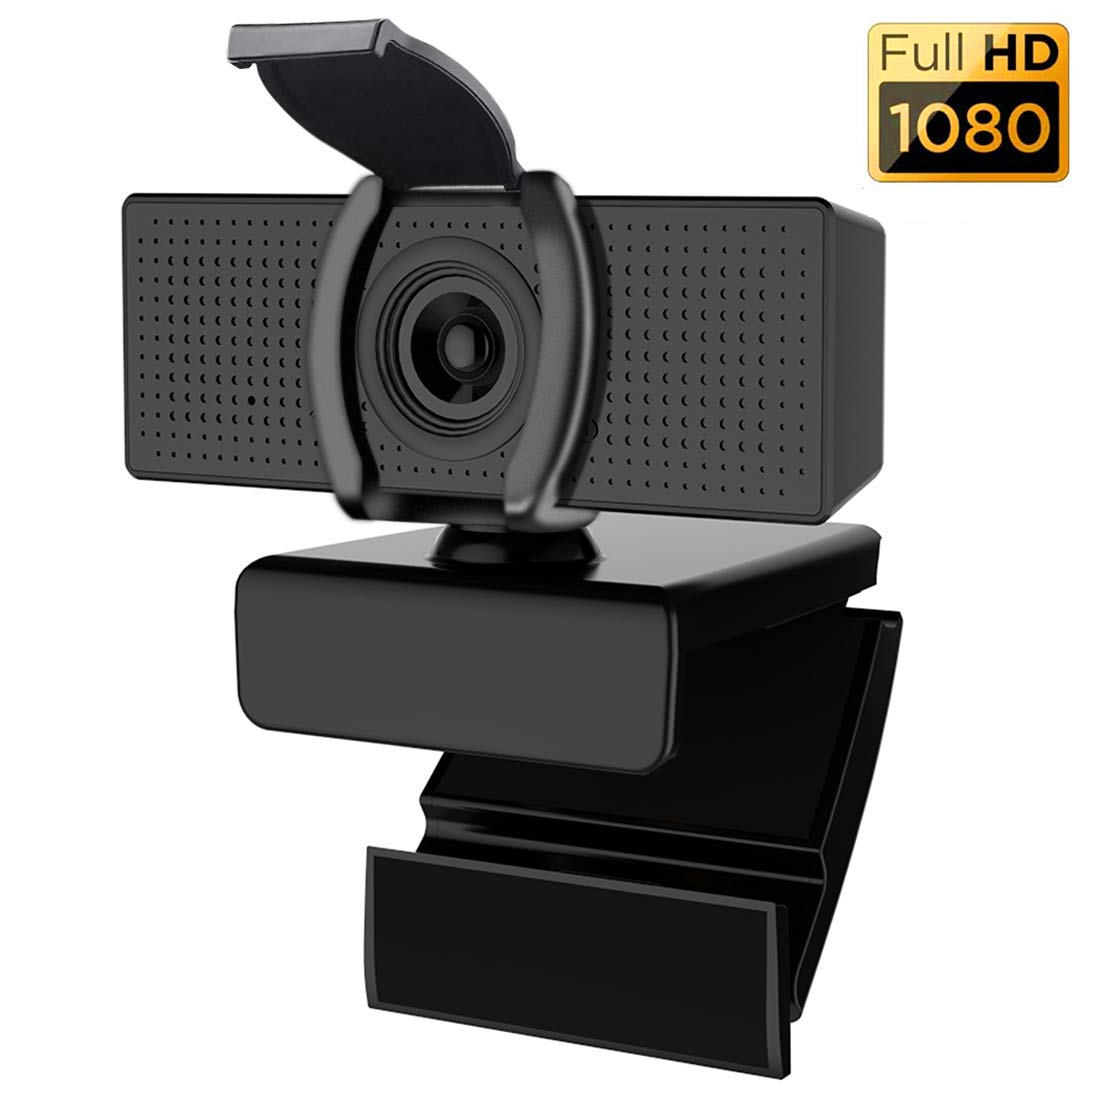 Fixdono Webcam with Microphone & Privacy Cover for Computers and Laptop HD 1080p Widescreen for Video Calling and Recording with USB Camera Webcam